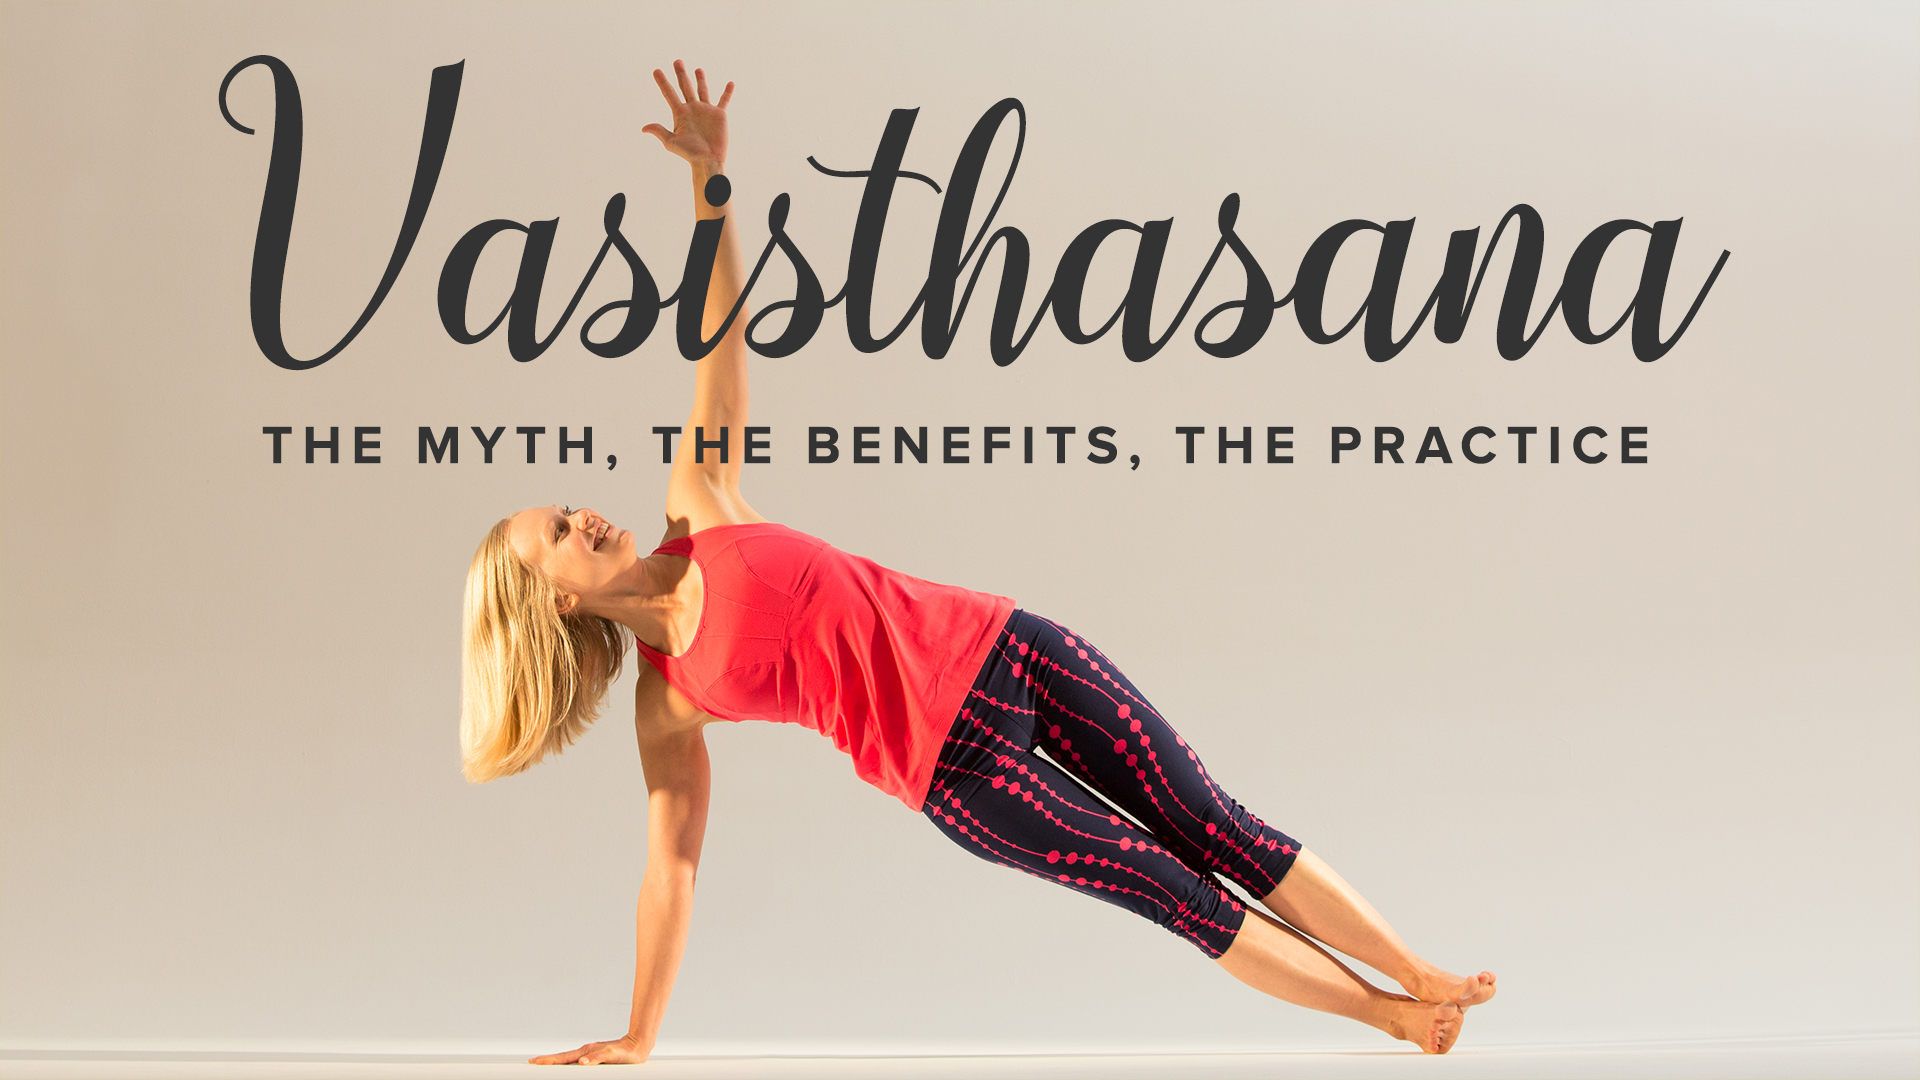 Vasisthasana Side Plank The Myth Benefits Practice